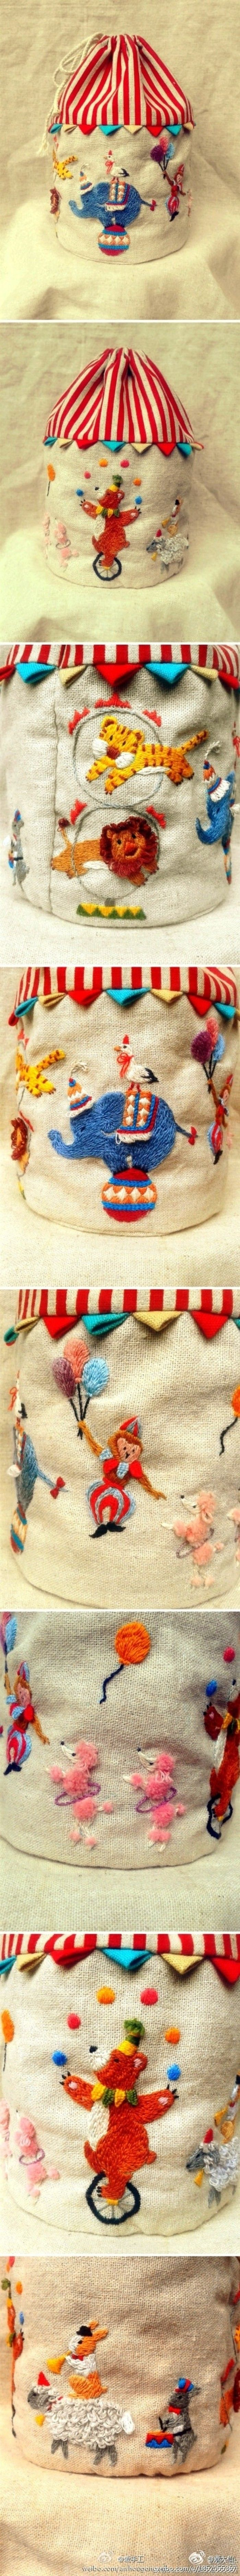 beautiful circus embroidery